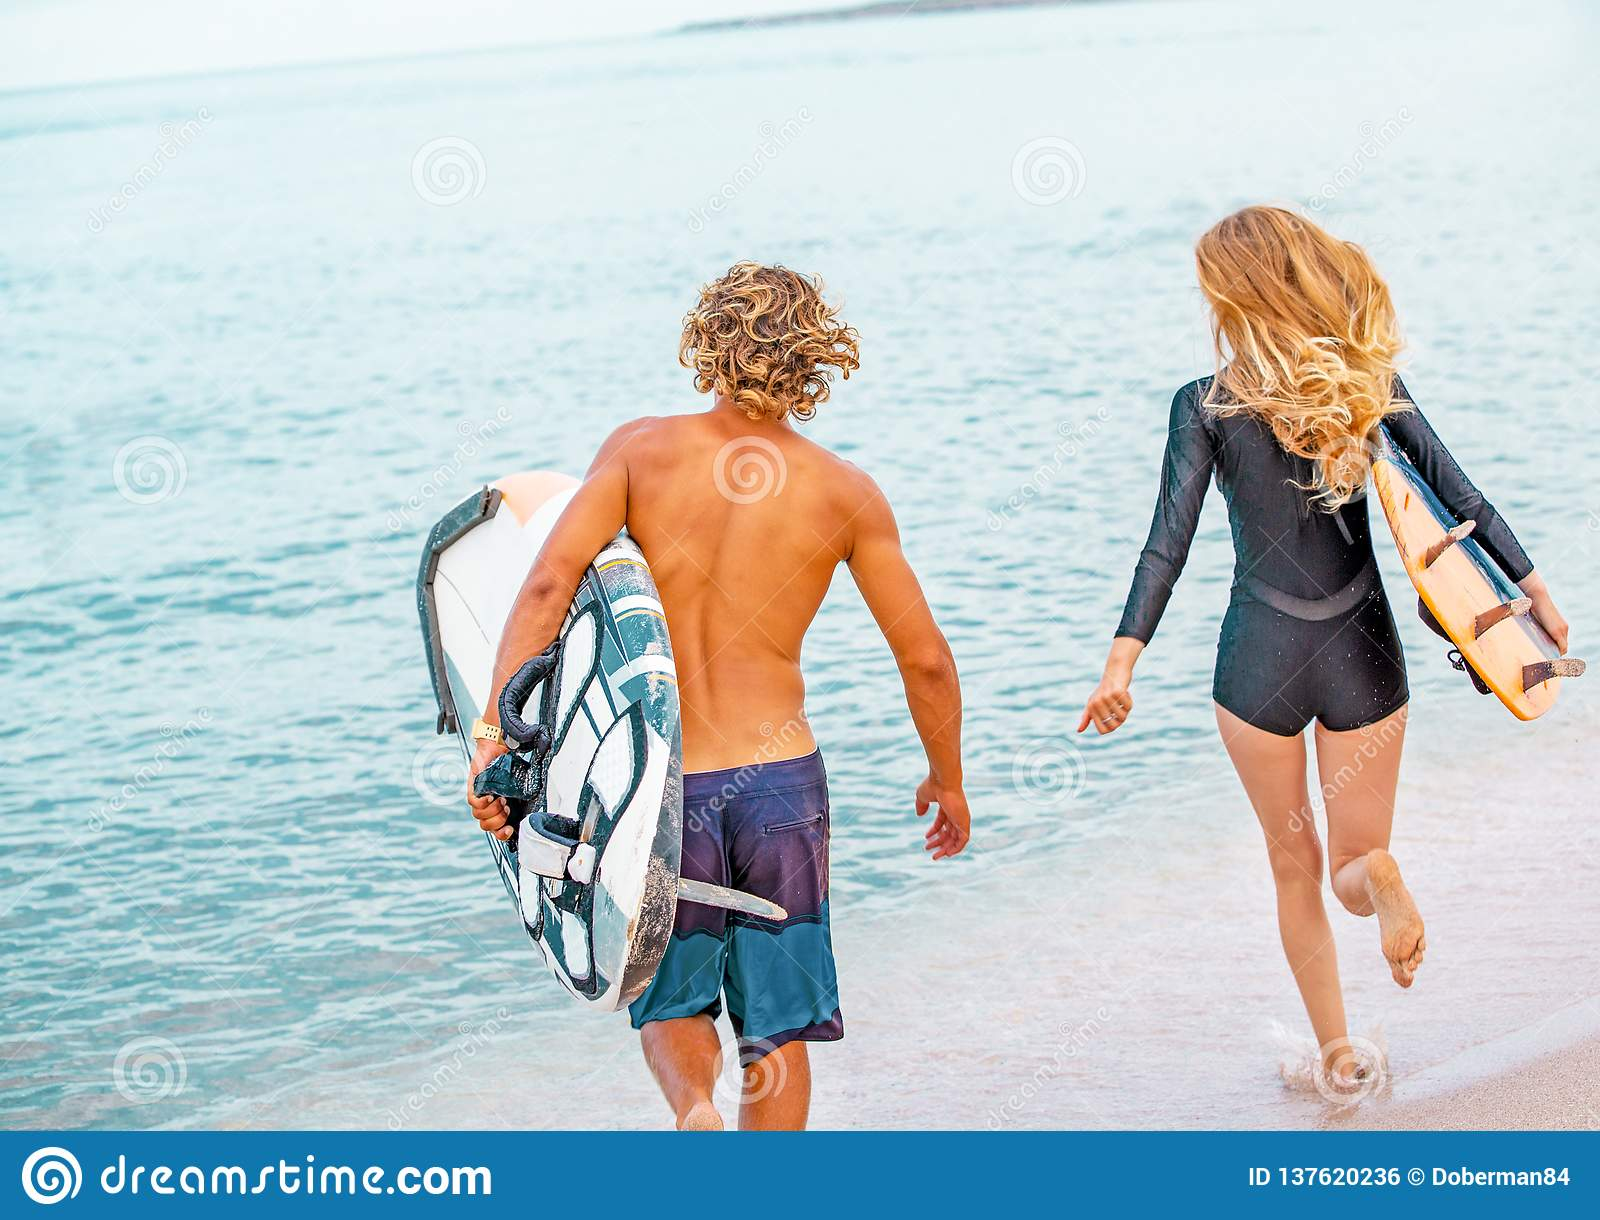 Surfers at the beach- Smiling couple of surfers run on the sea and having fun in summer. Extreme sport and vacation